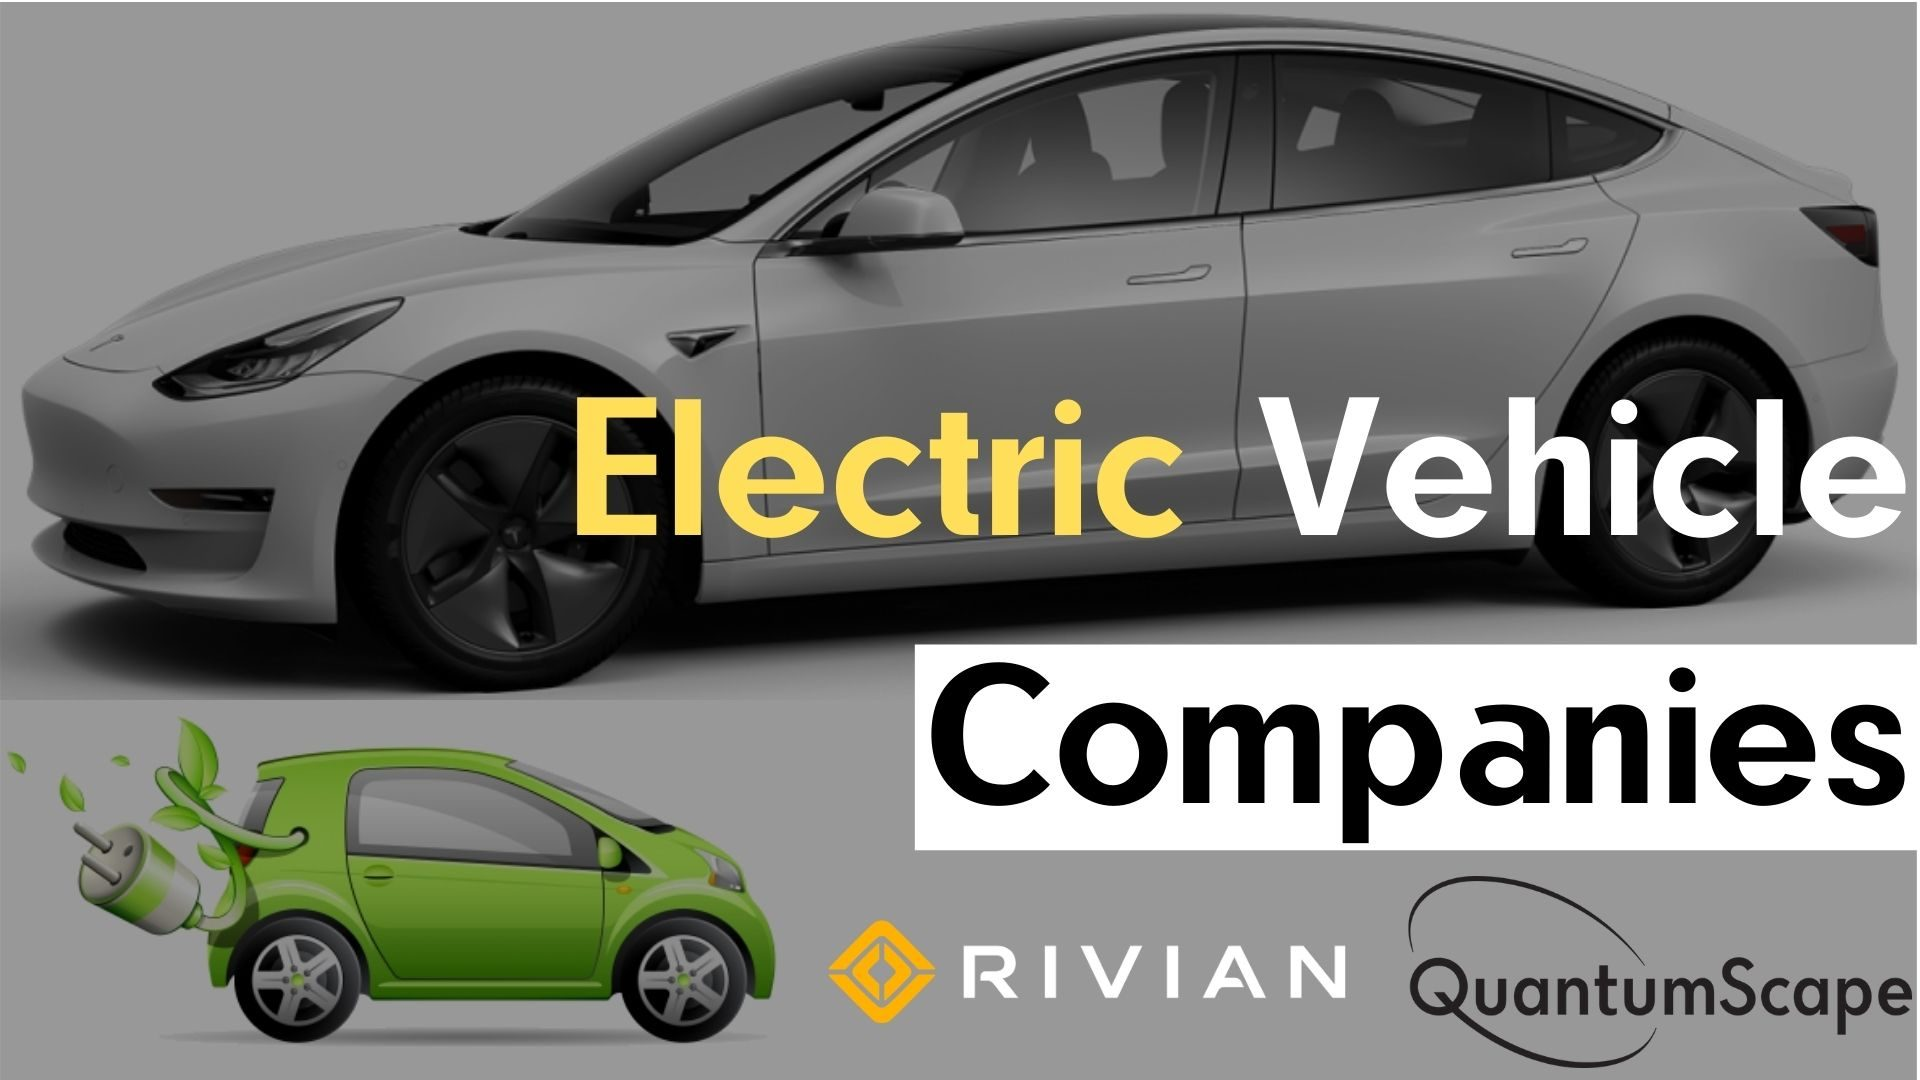 Electric Vehicle Companies